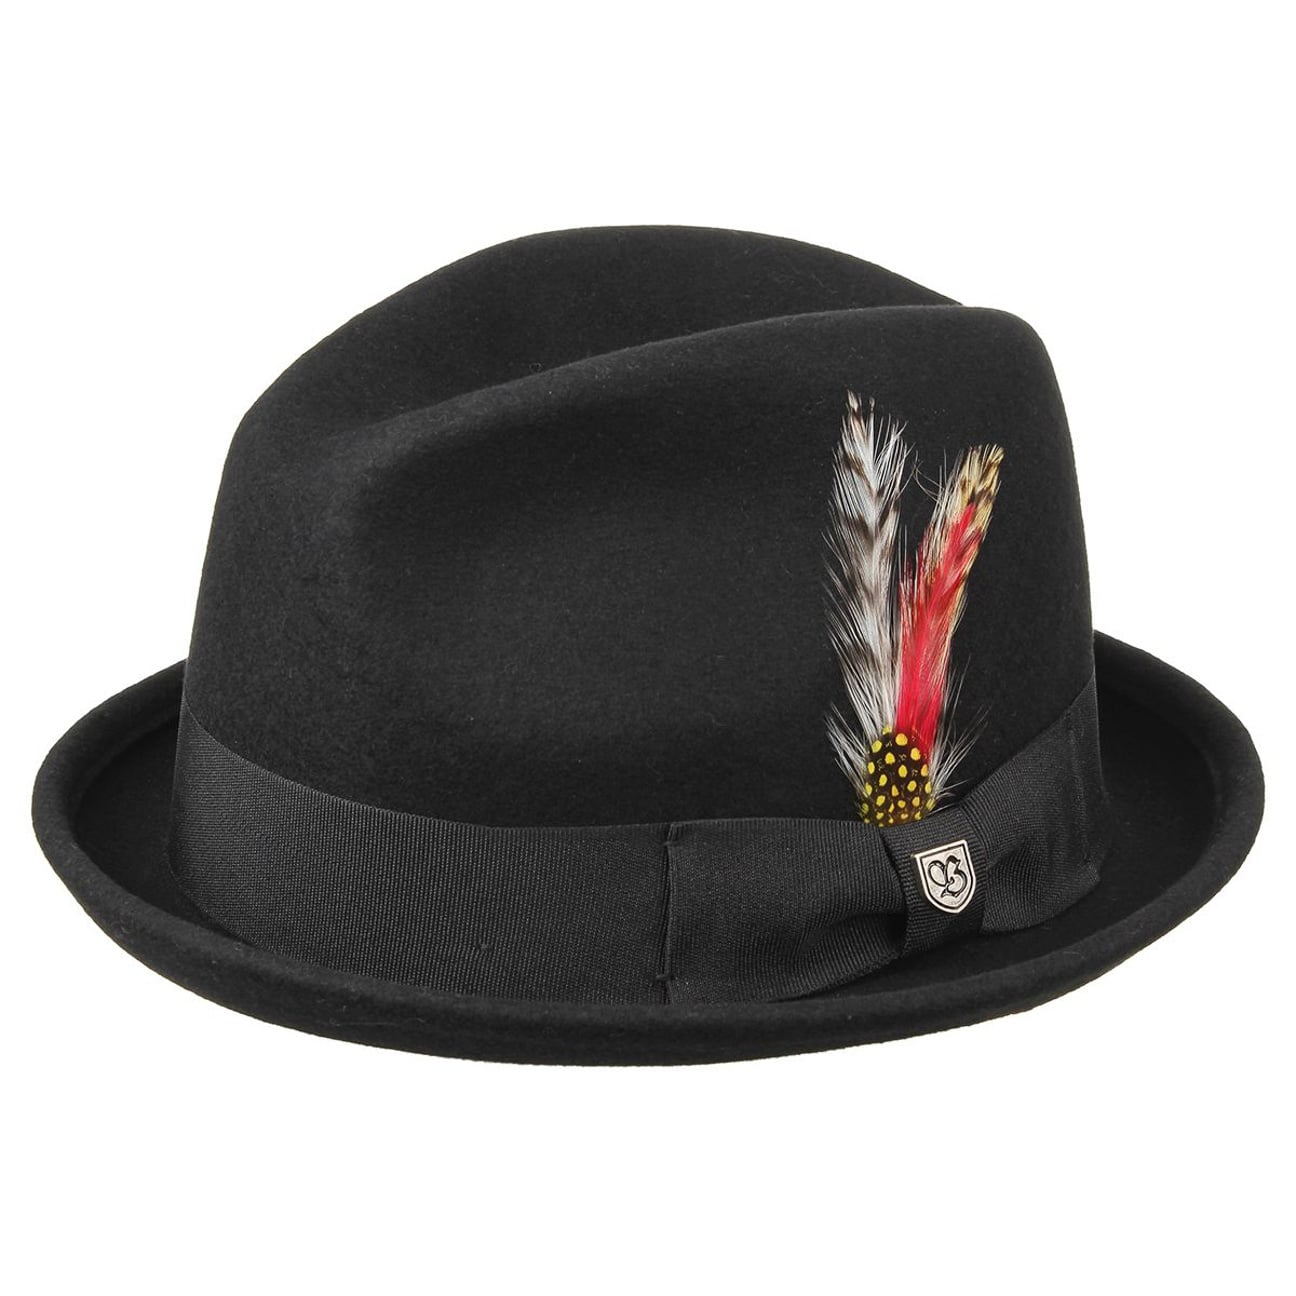 ... Cappello Gain Wool Player by Brixton - nero 1 ... cb61c101be6a